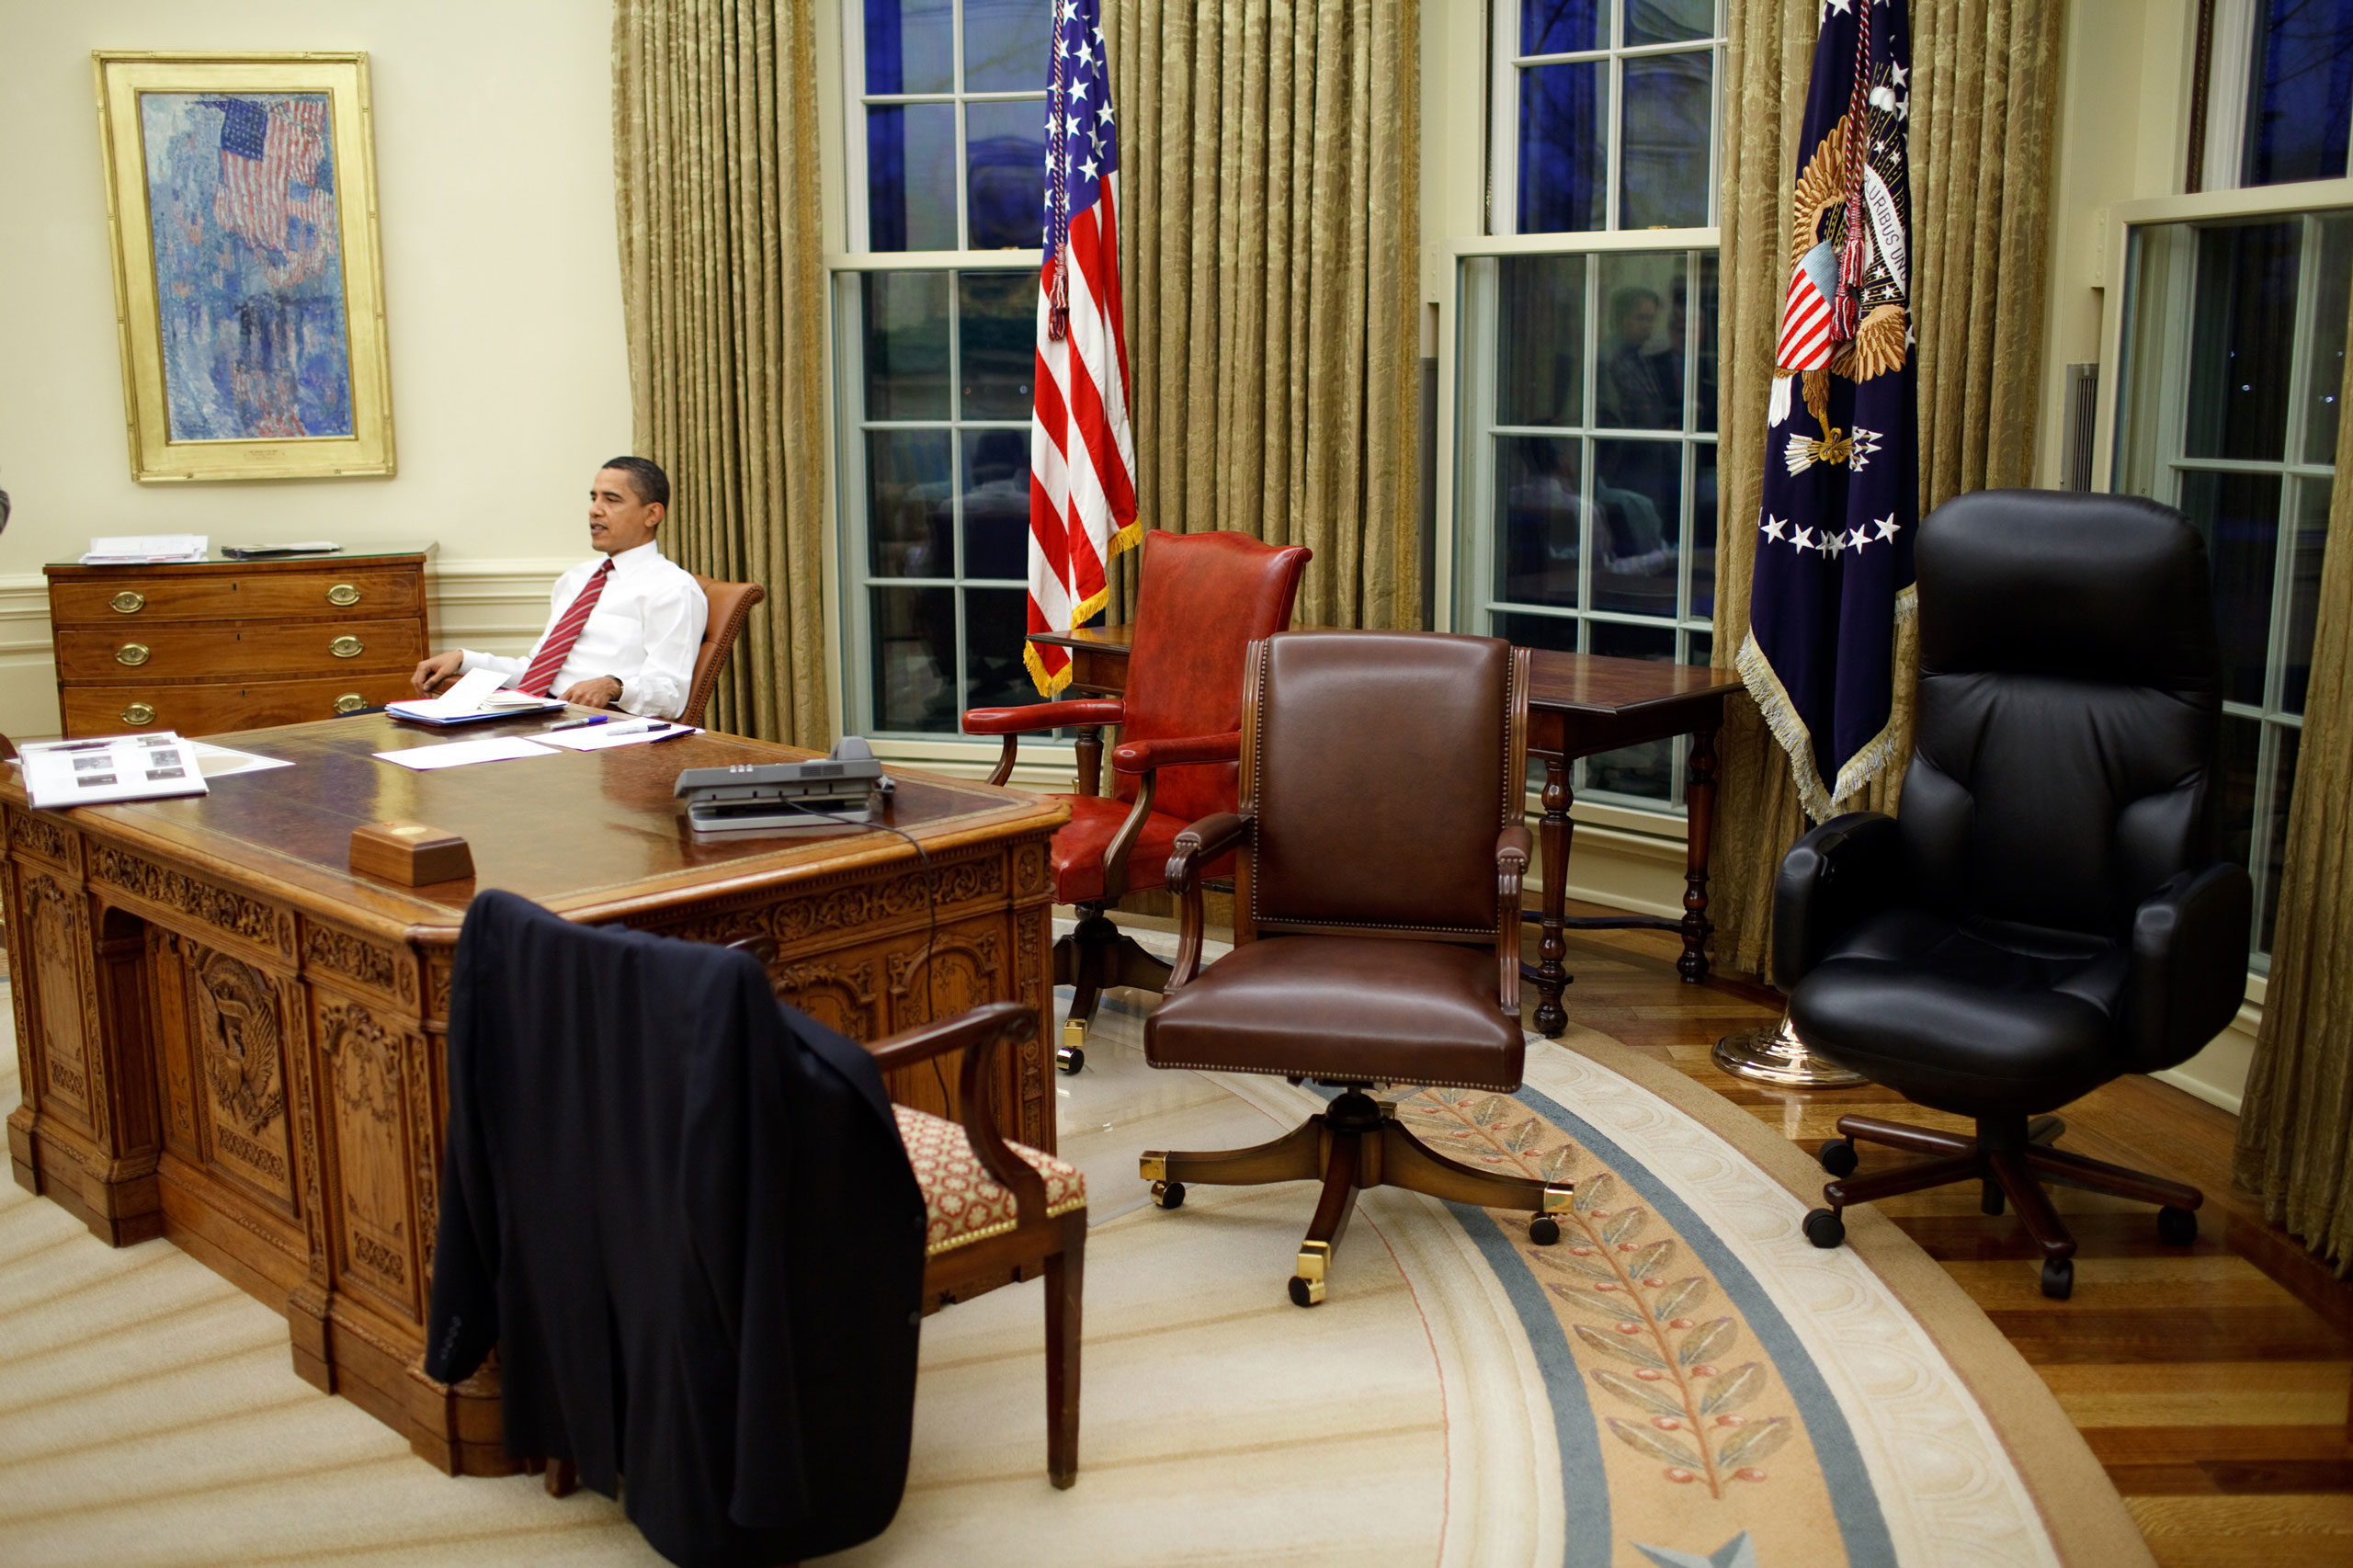 President Barack Obama tries out different desk chairs in the Oval Office, Jan. 30, 2009.